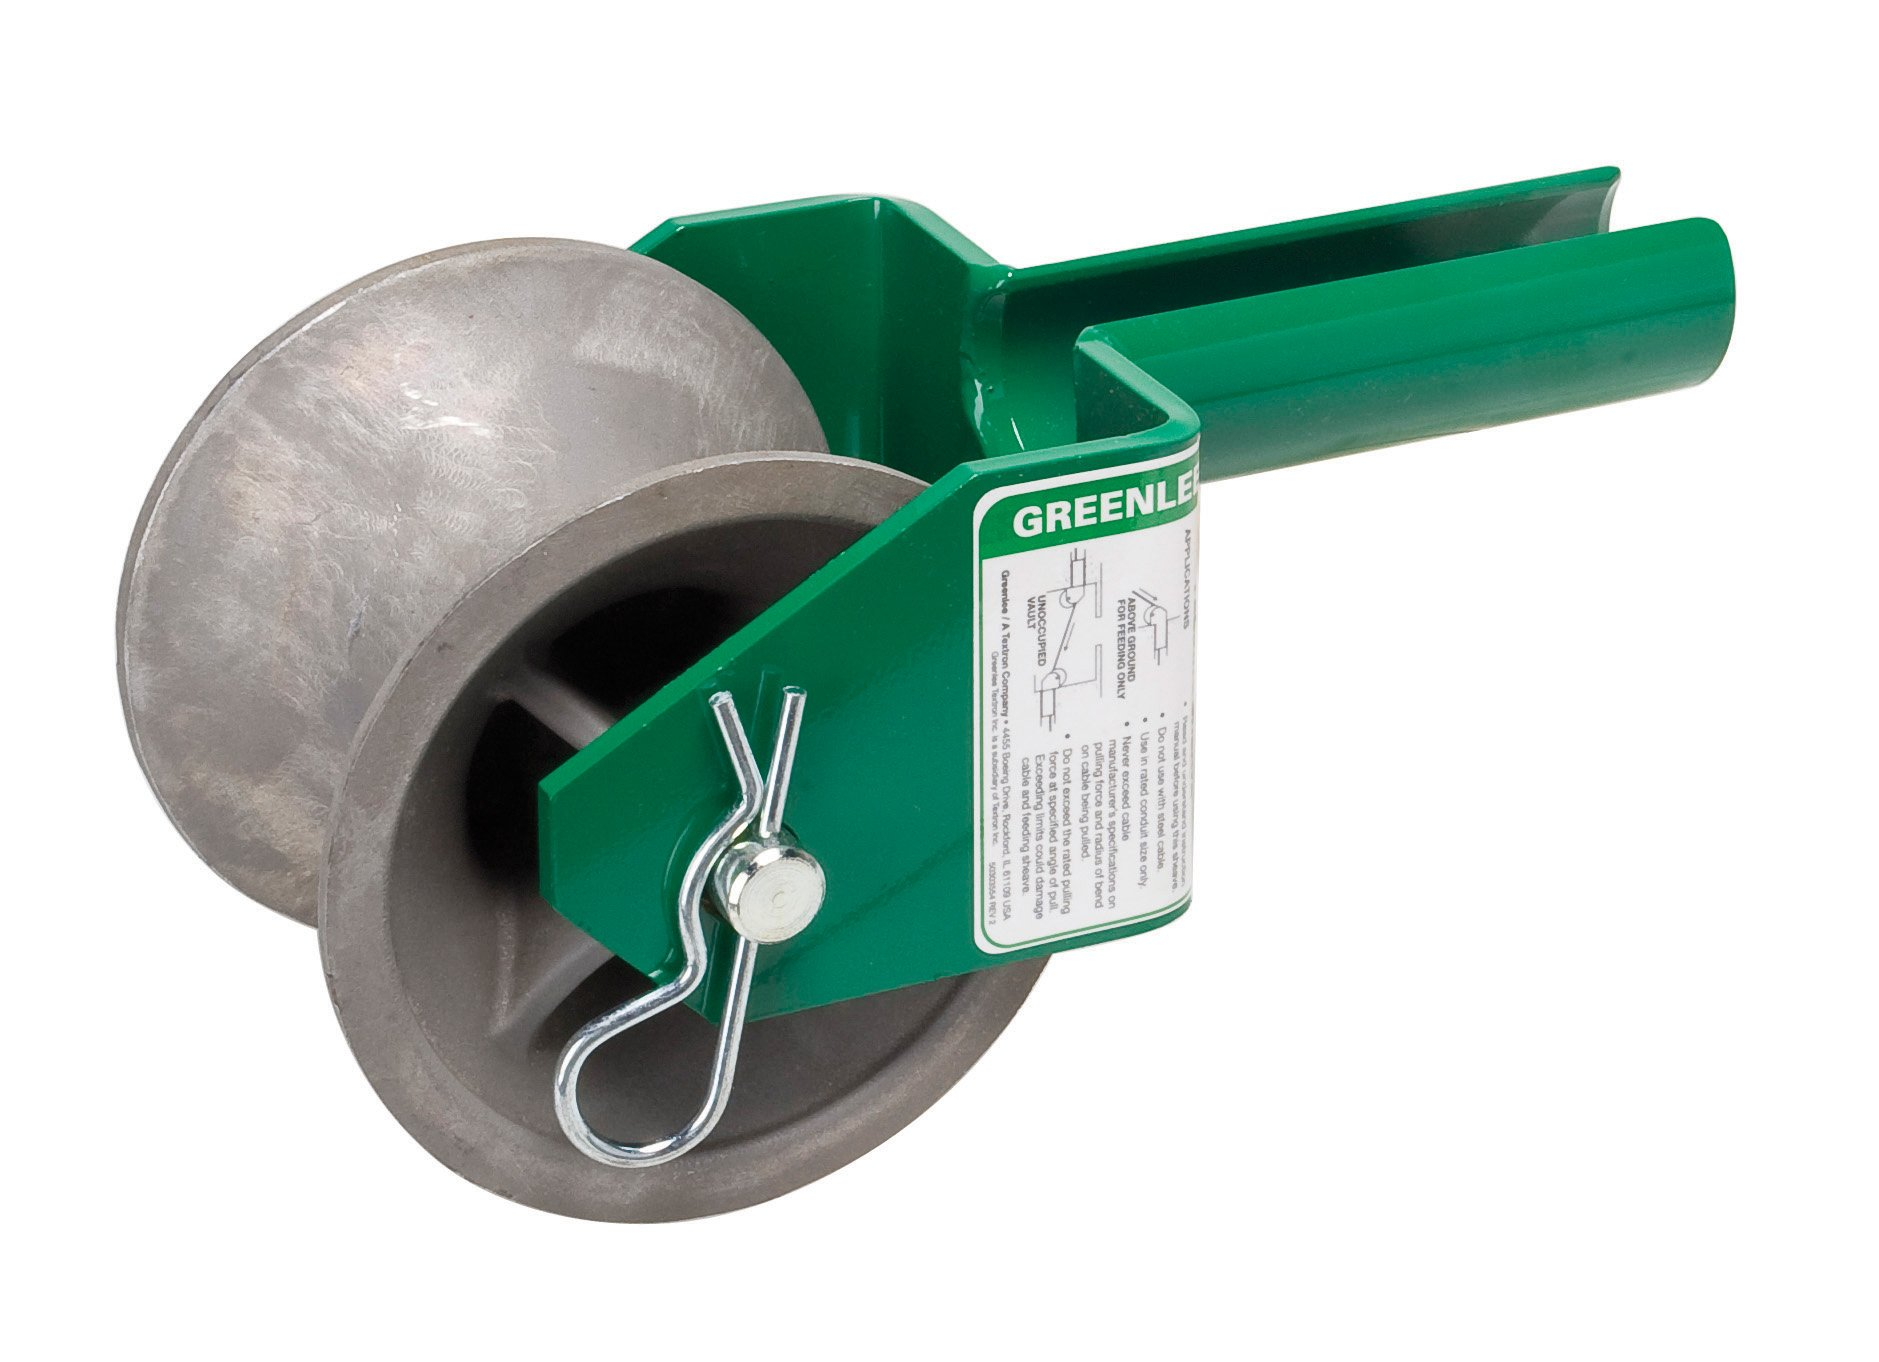 Greenlee 441-2 Feeding Sheave for 2-Inch Conduit